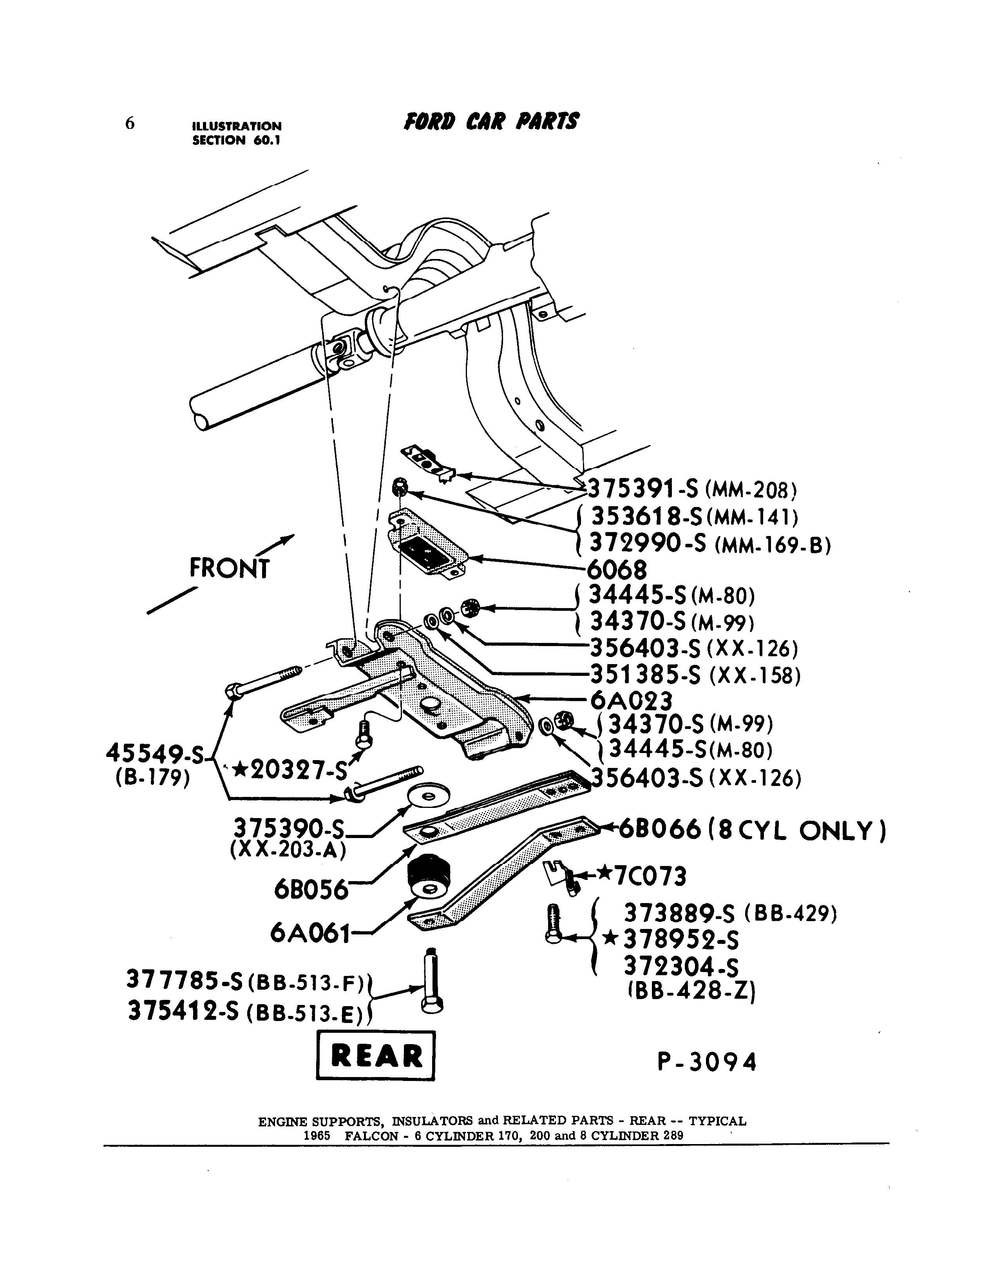 1961 65 Falcon Comet Transmission Mount Bolt Captive Nut Ford 289 Engine And Assembly Diagram Larger More Photos